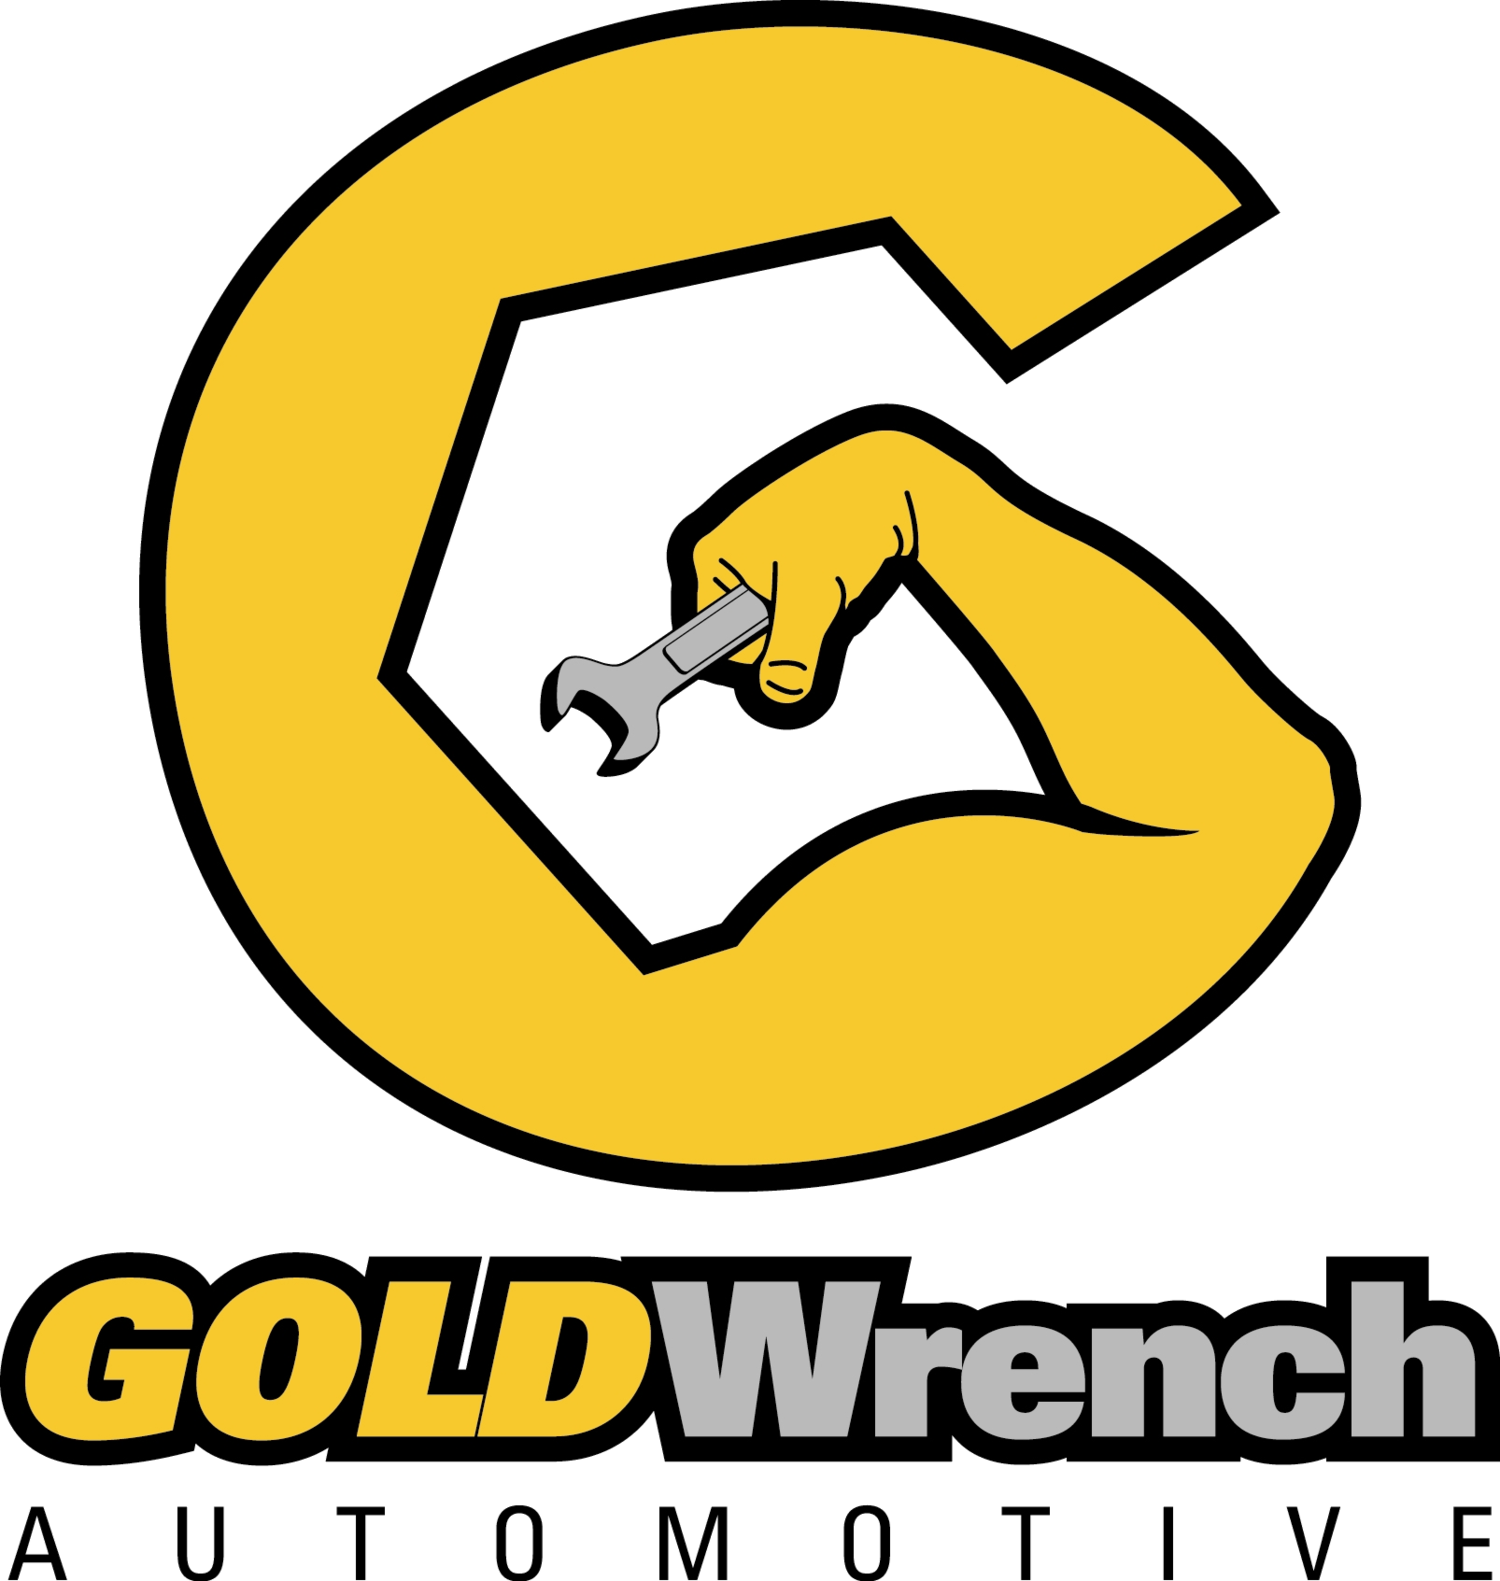 Goldwrench Automotive